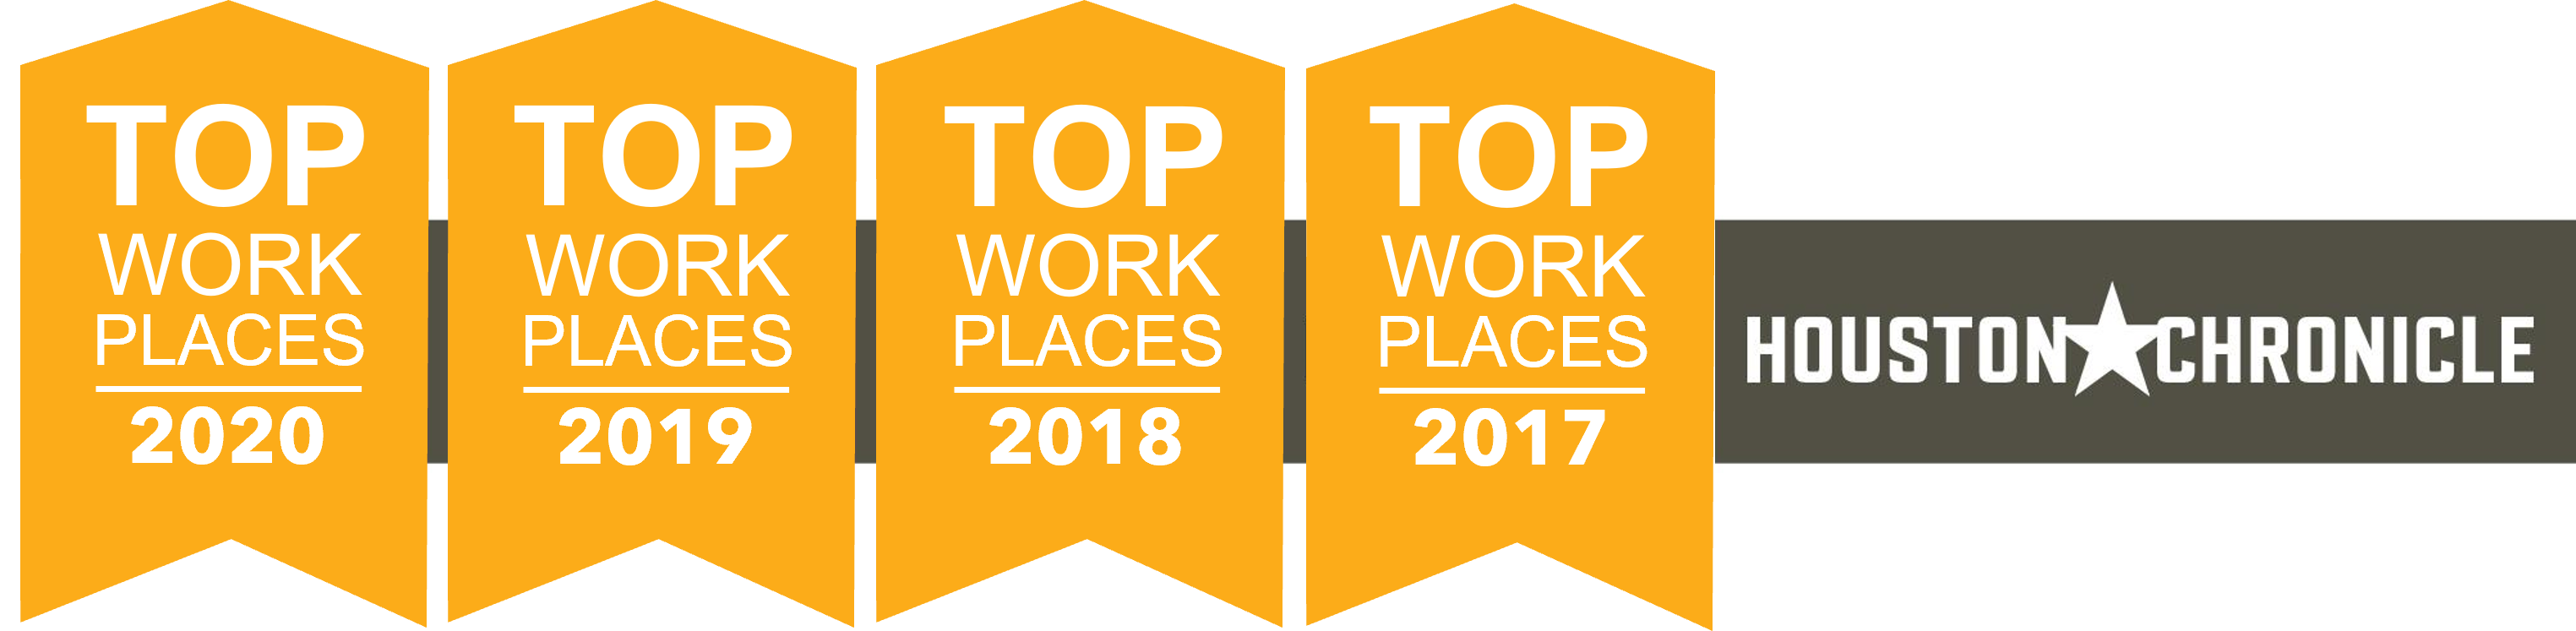 Callon Petroleum has been recognized as a Top Workplace by the Houston Chronicle four years in a row -  2017, 2018, 2019, and 2020!